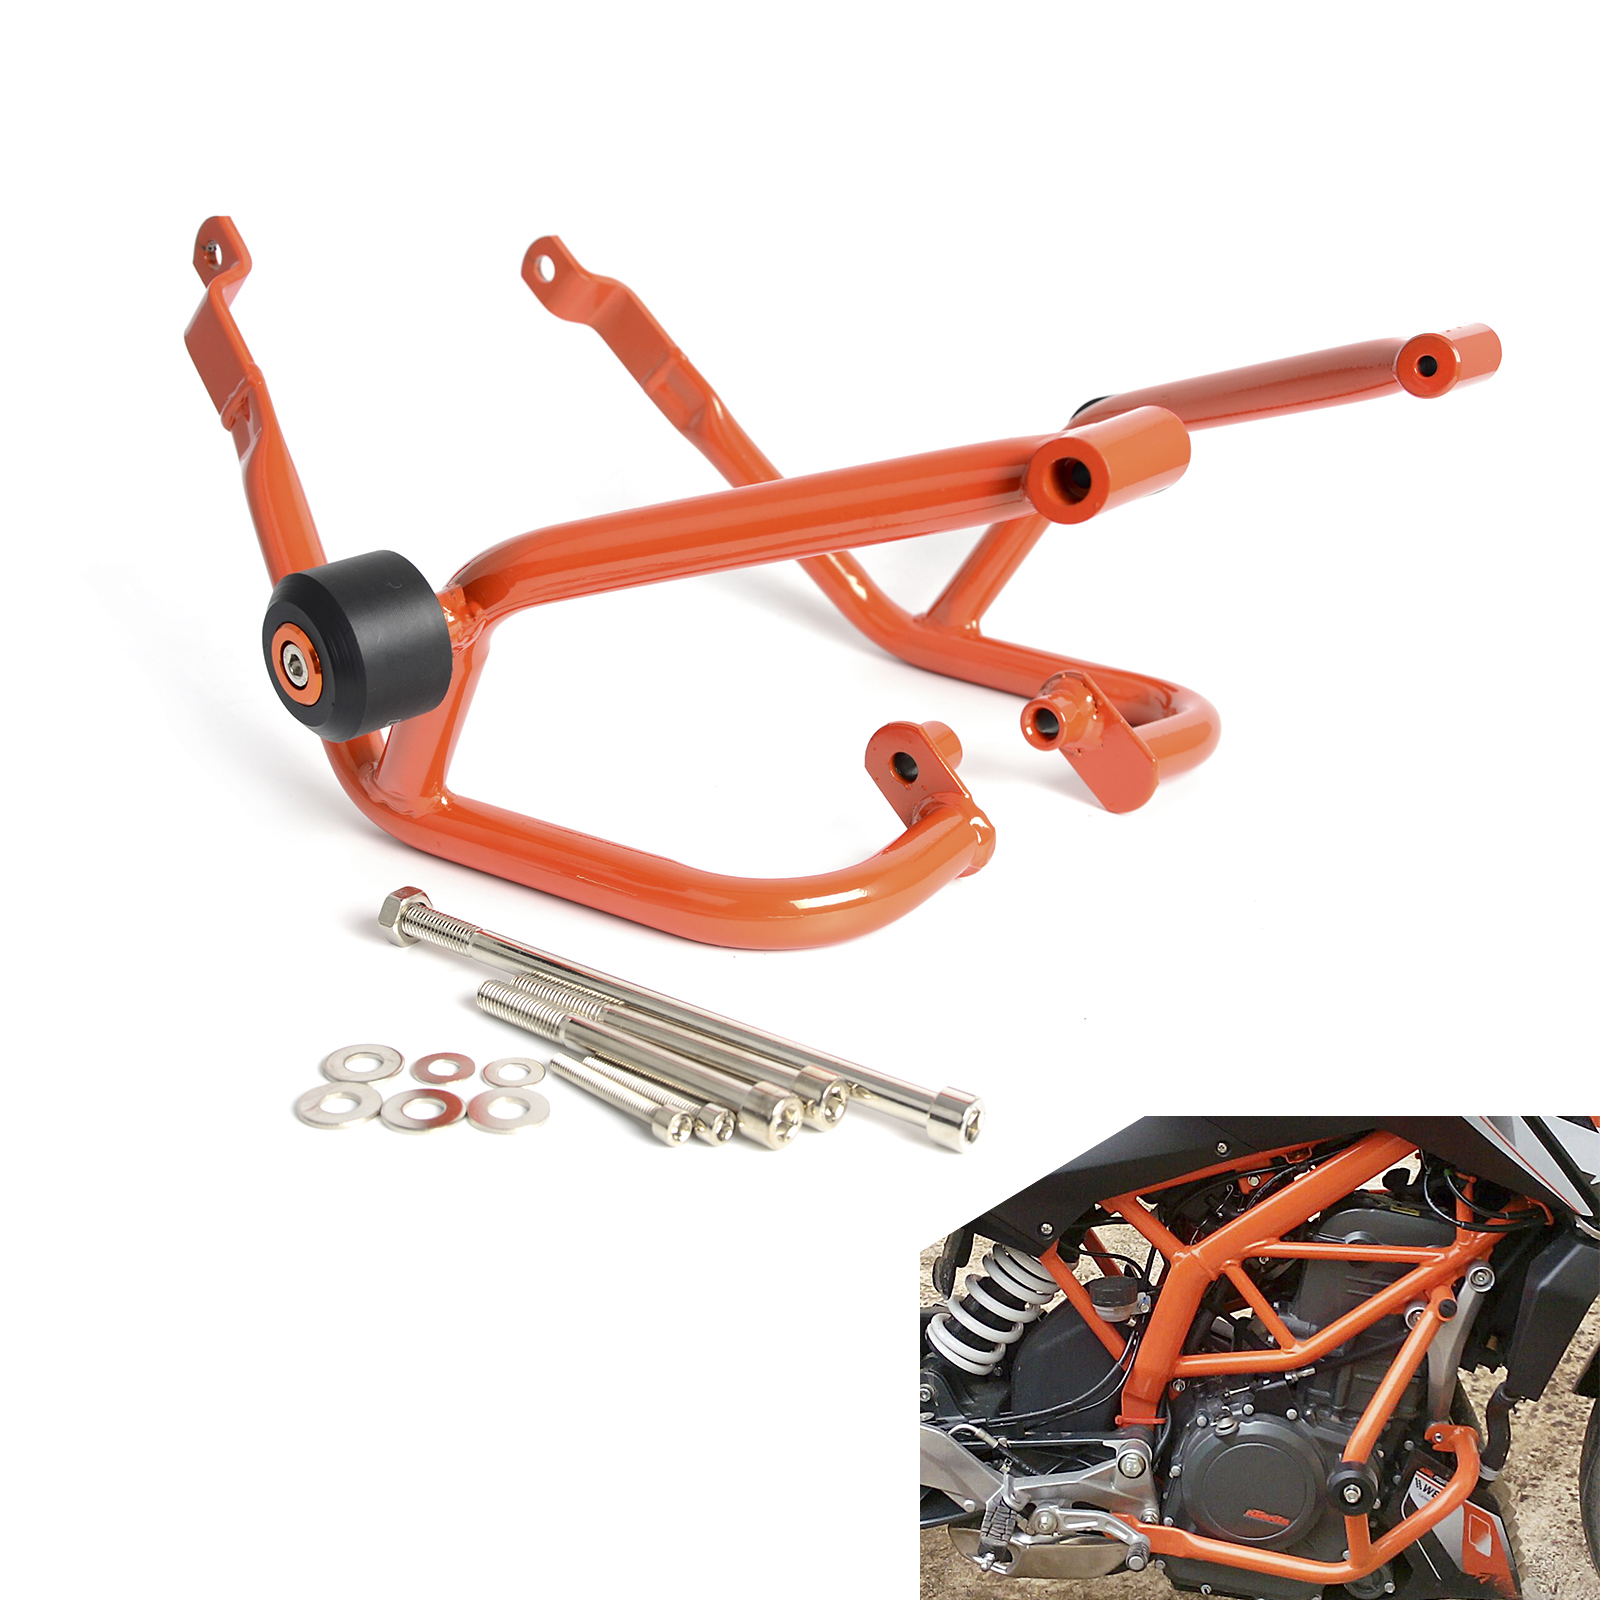 цена Motorcycle Engine Guard Crash Bars Frame Protector Bumper For KTM 125 200 Duke 2011 2012 2013 2014 2015 NEW